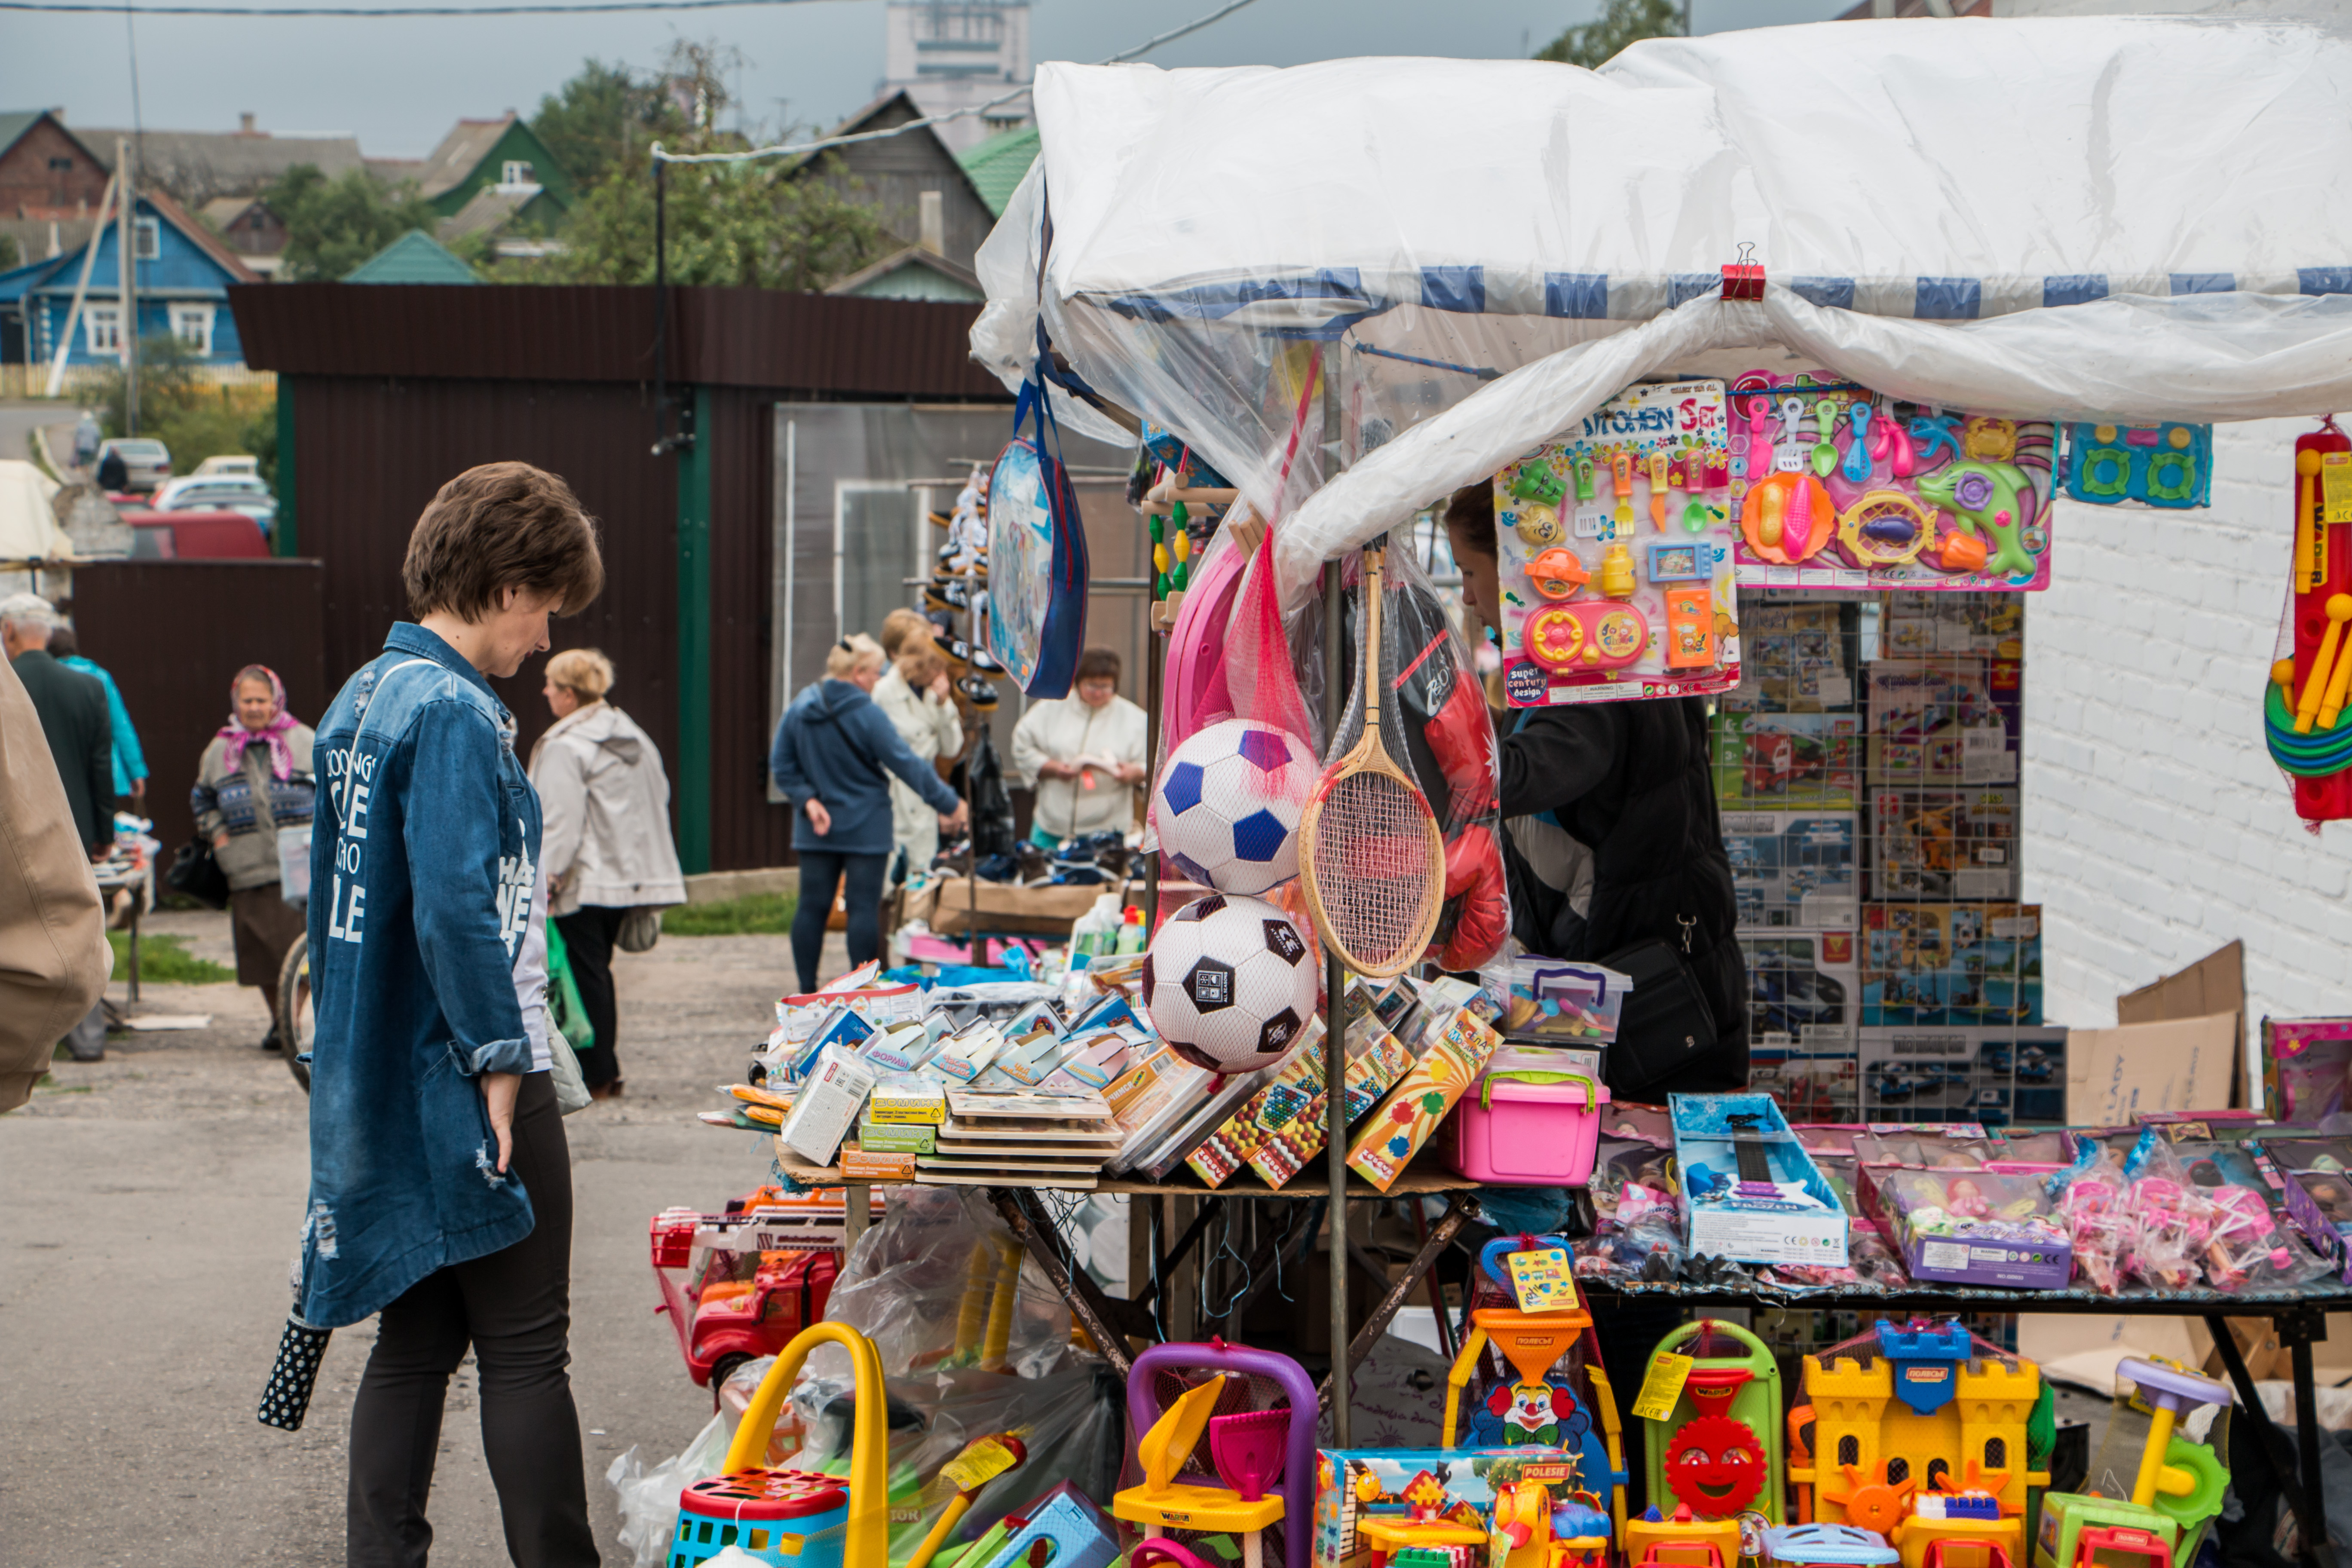 Toy stand, Business, Entertainment, Fun, Goods, HQ Photo